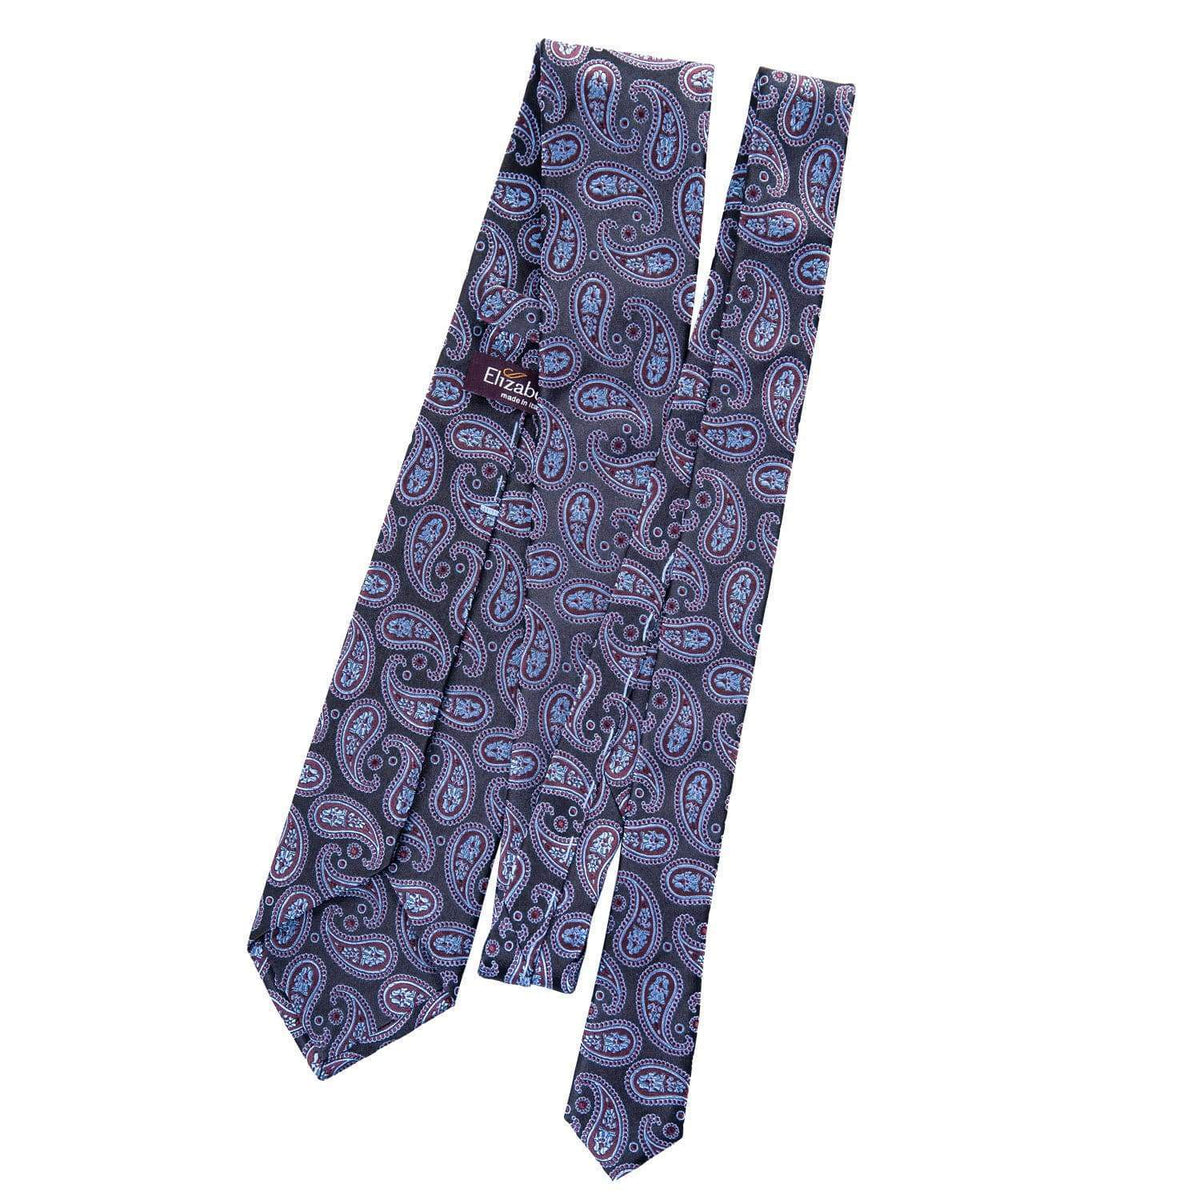 Burgundy and Blue Paisley Tie - Woven in Como, Italy